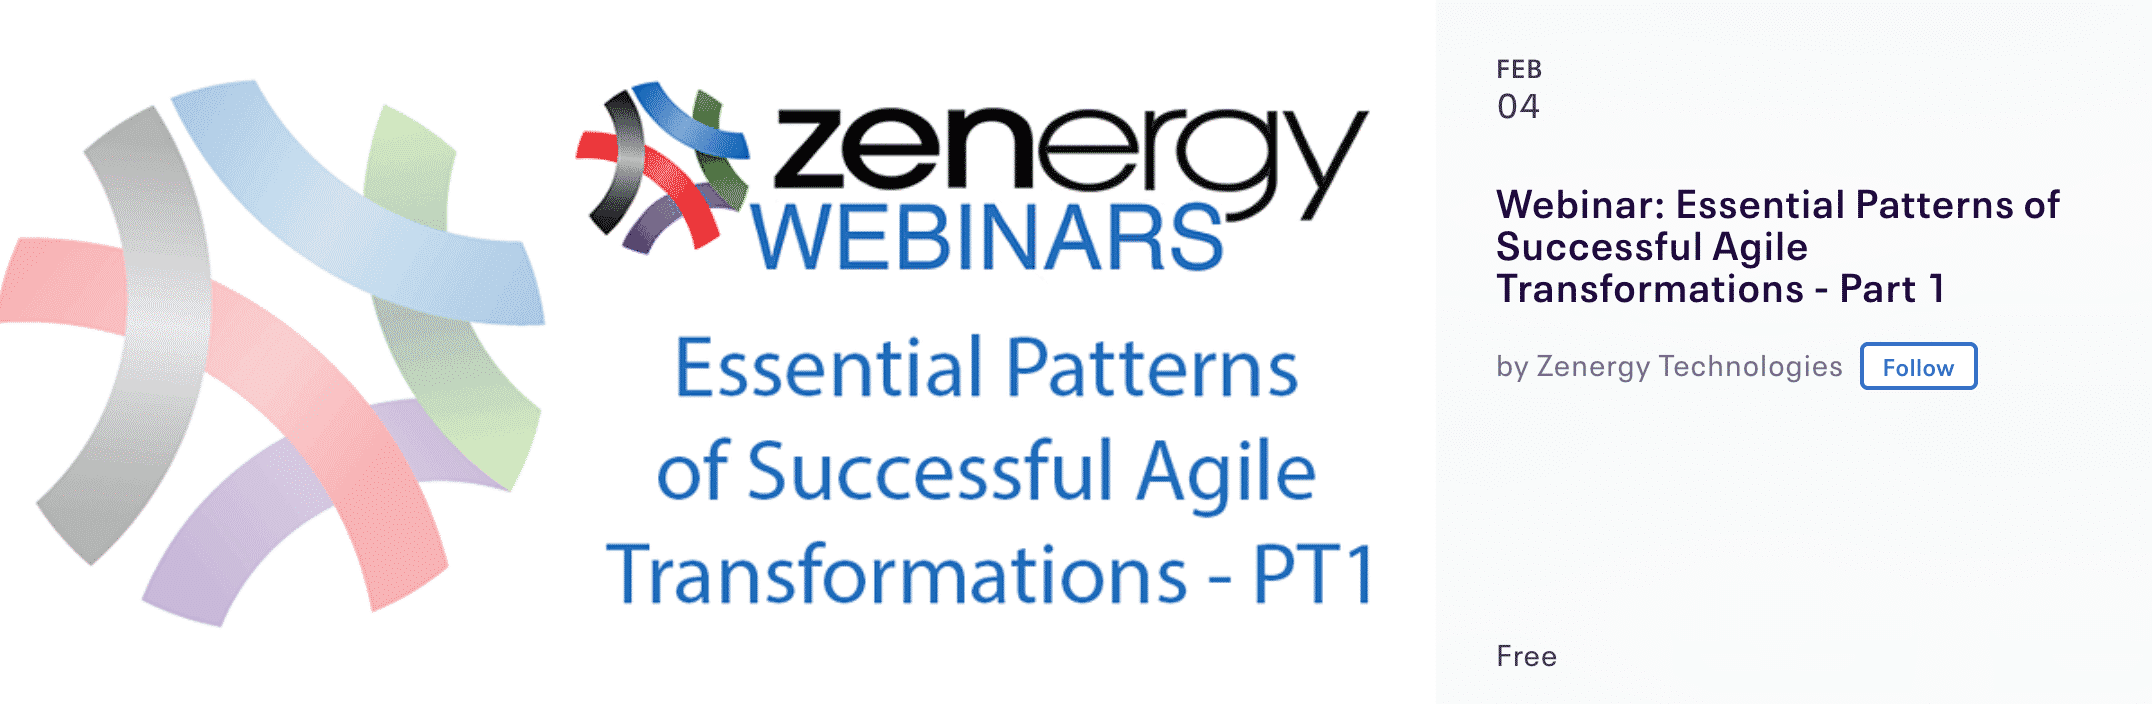 Essential Patterns of Successful Agile Transformations, part-1 Agile20Reflect Festival